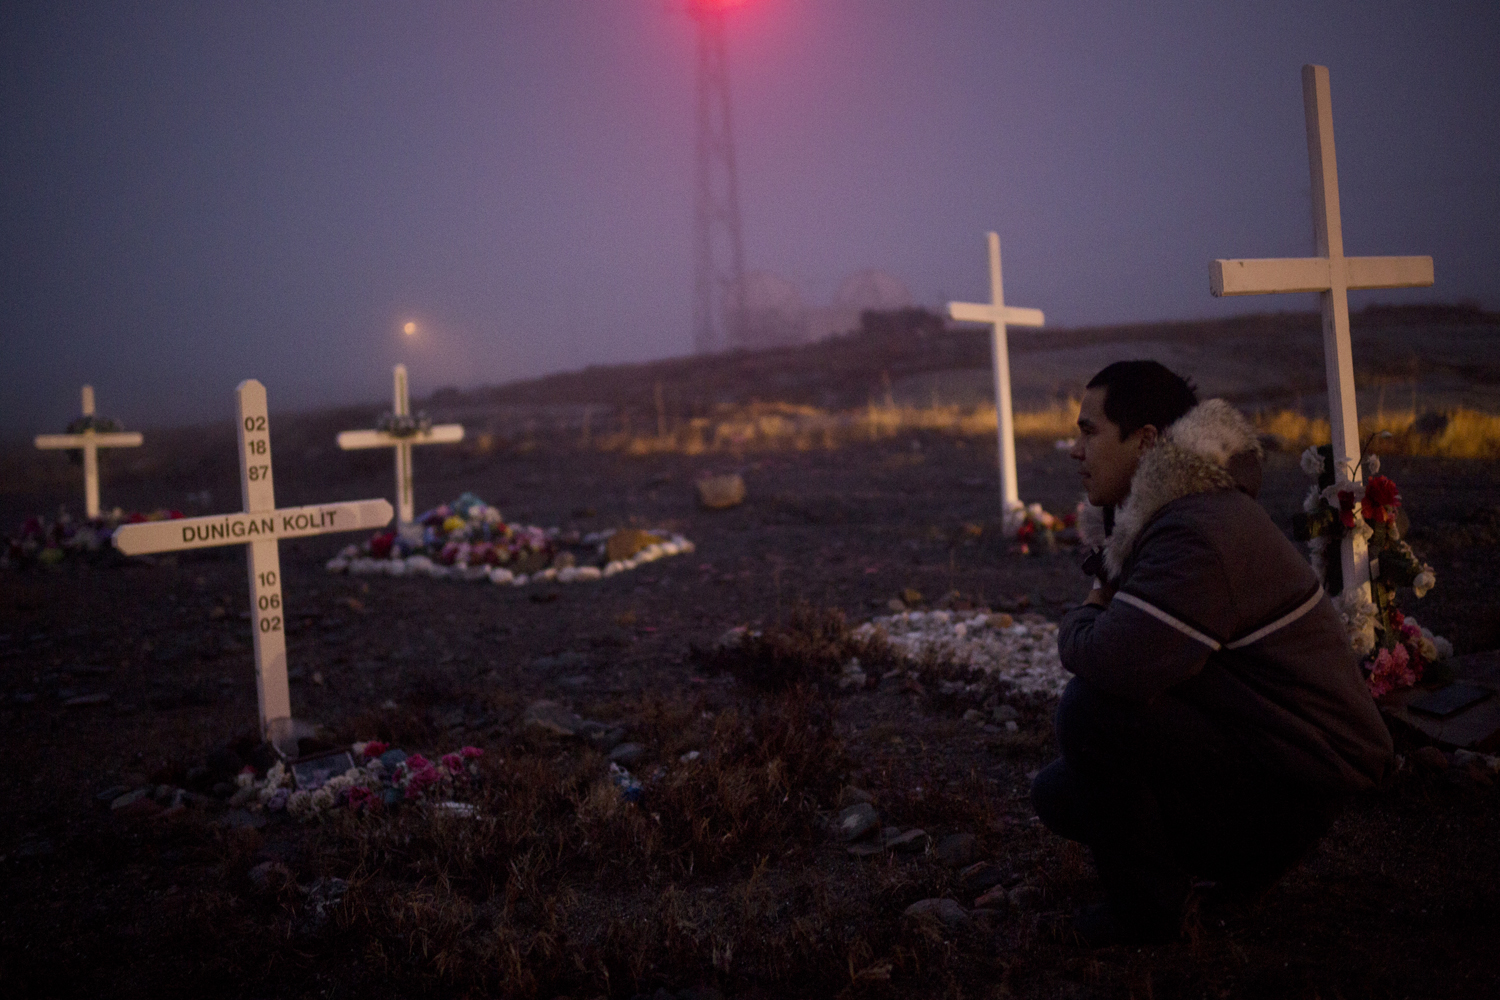 Rankin Inlet, Canada, Oct. 12, 2013. Brian Tagalik, 28, visits the grave of his friend Dunigan Kolit, who killed himself when he was 15-years old. As Brian walks throughout the cemetery, he points out the graves of almost a dozen of his friends who died of suicide.